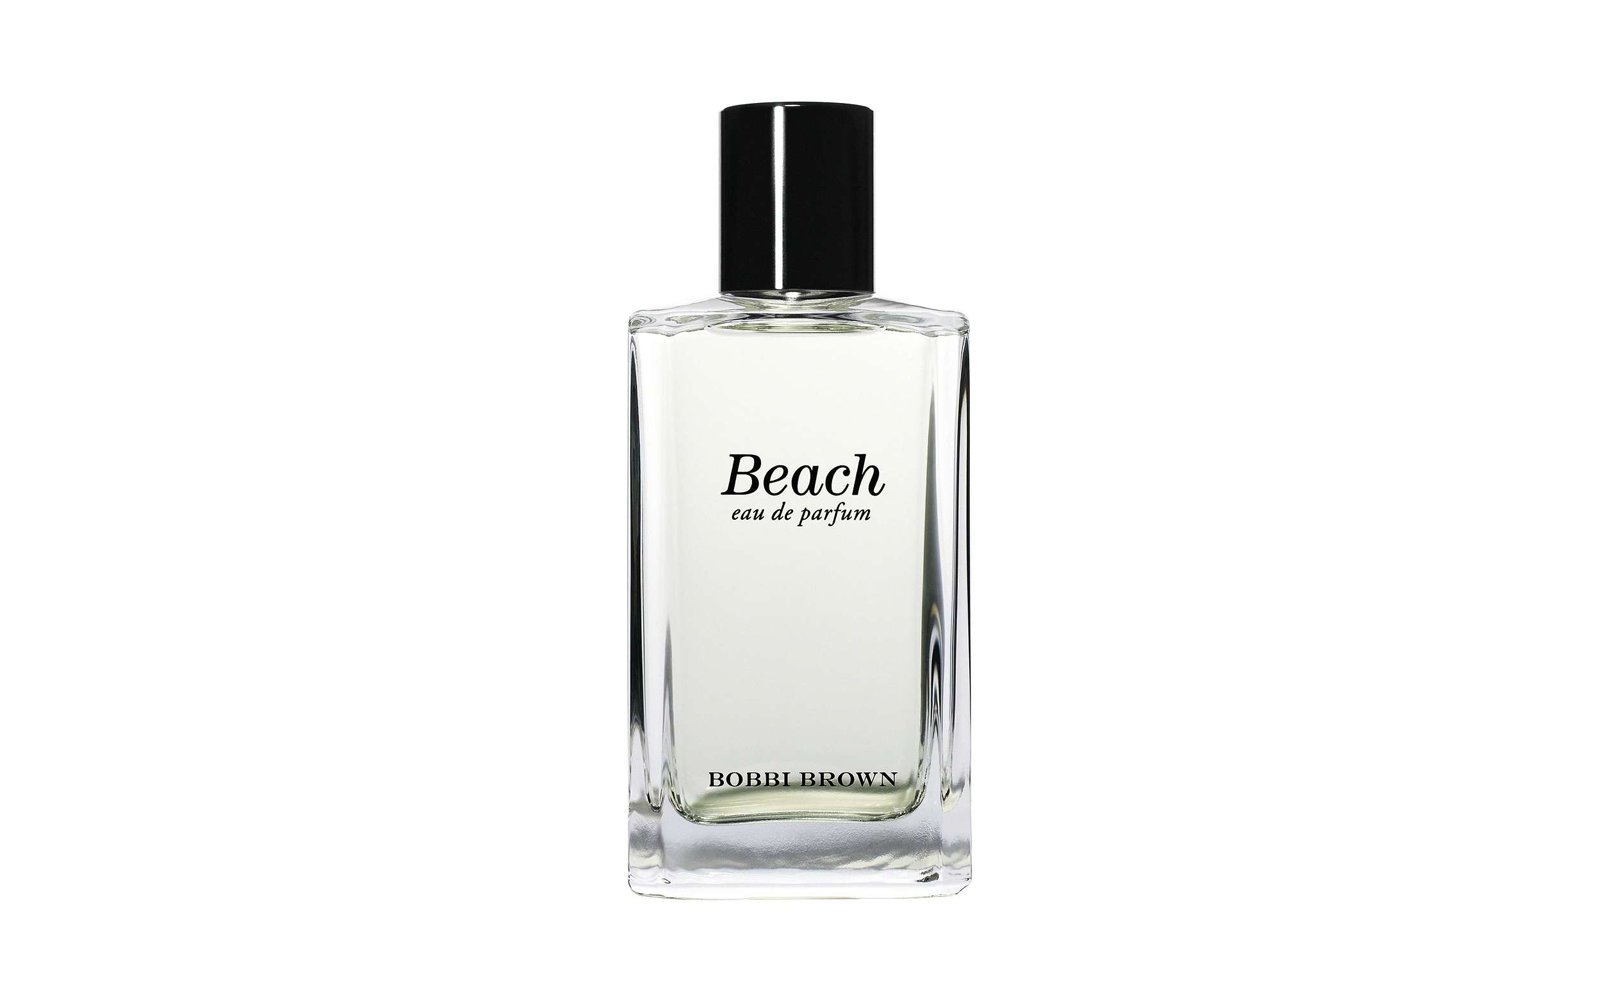 Bobbi Brown, Beach